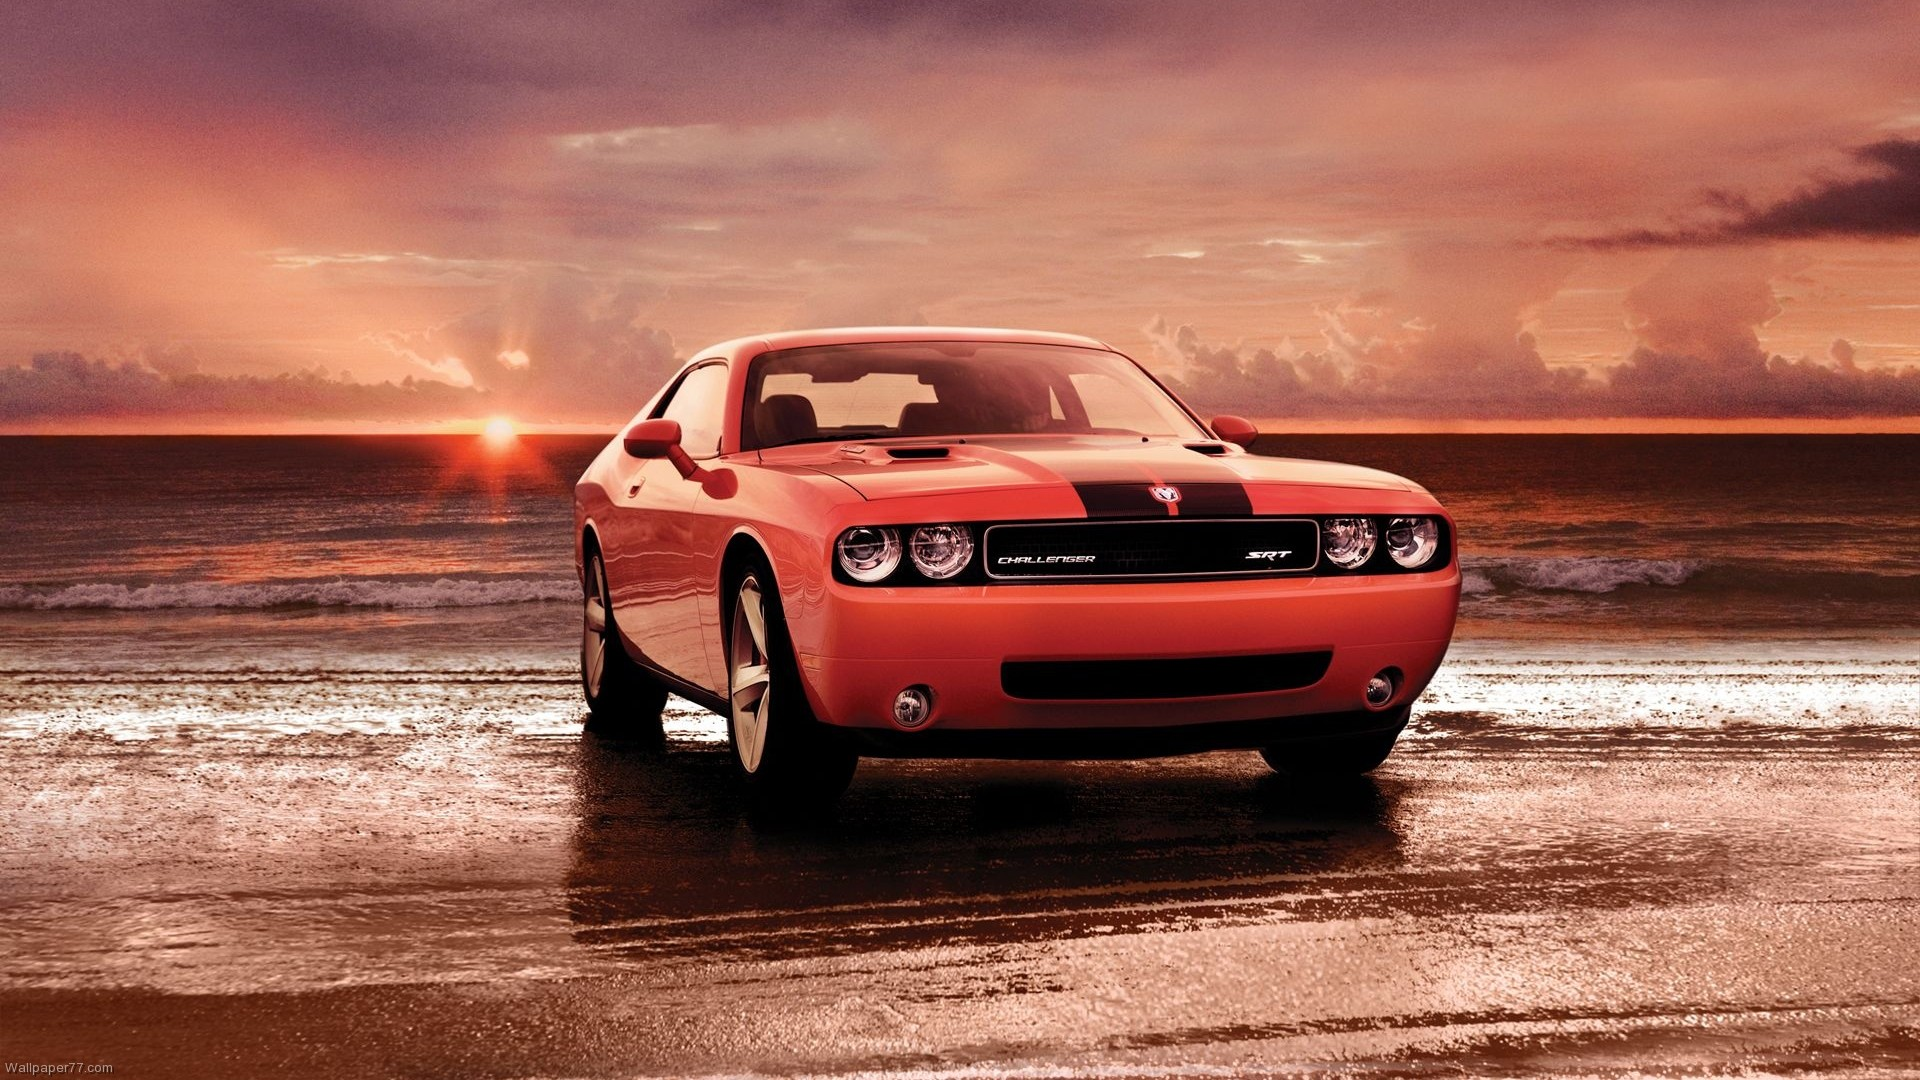 1920x1080 pixels Wallpapers tagged Car Wallpapers Dodge Wallpapers 1920x1080